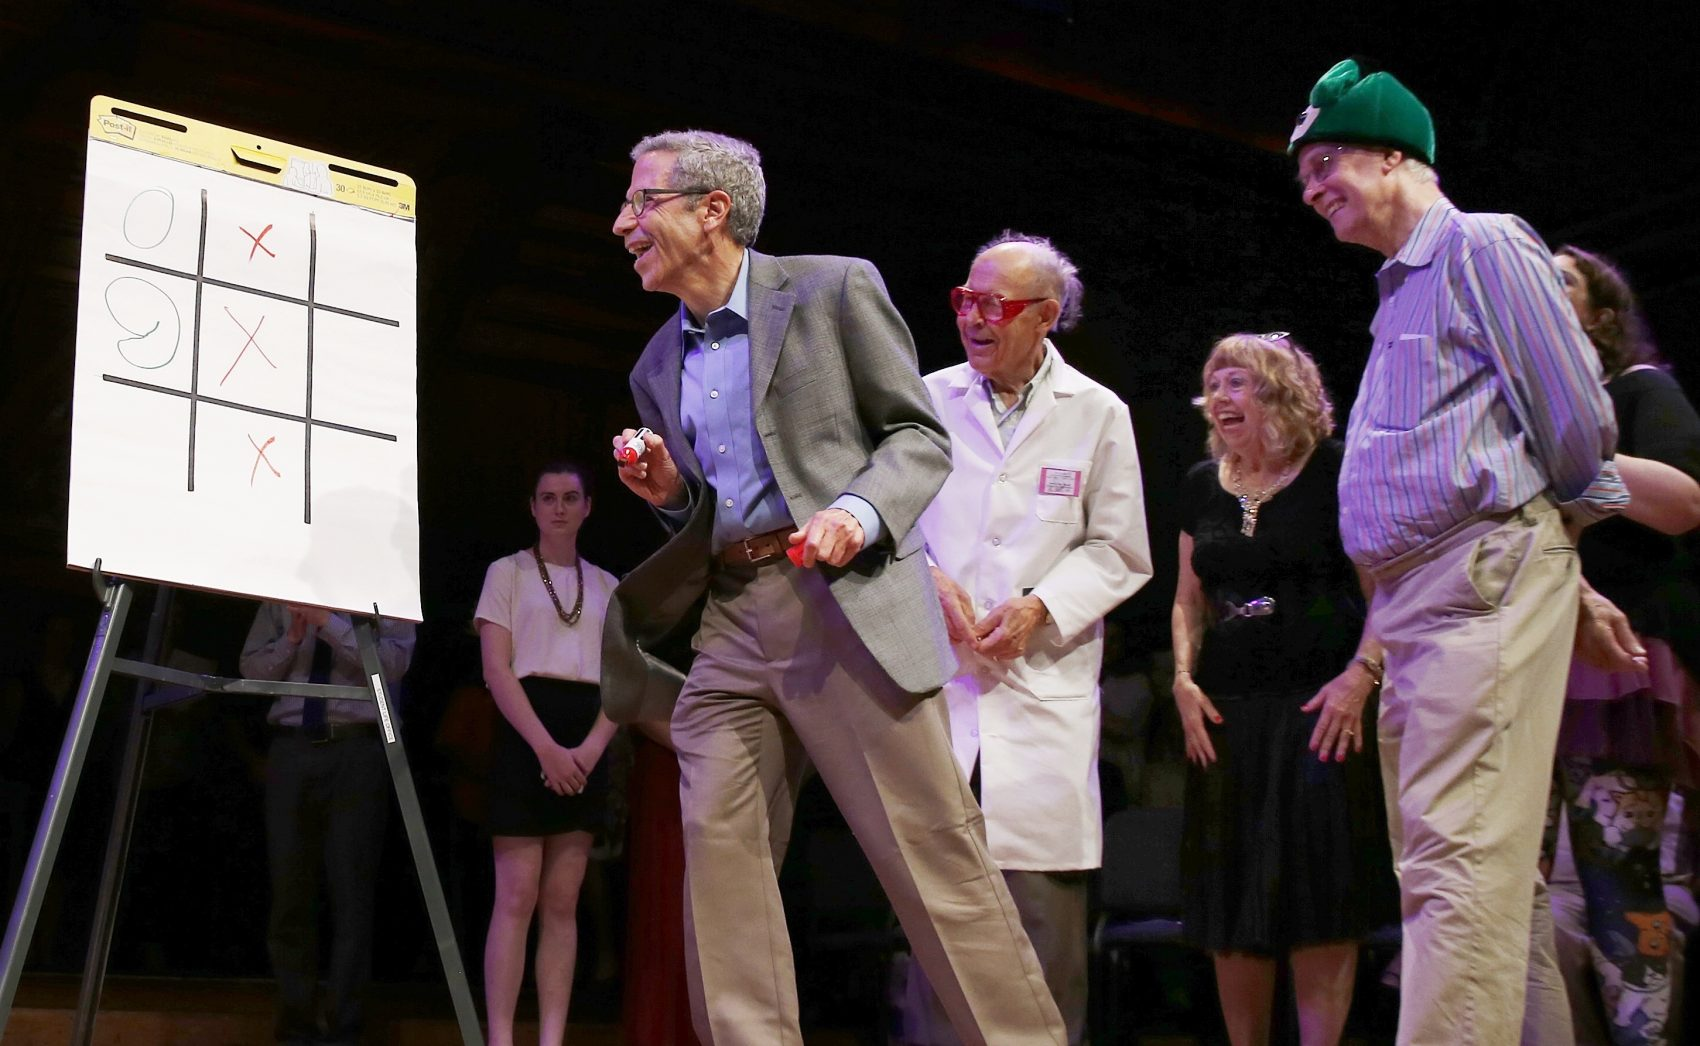 """Nobel laureates Rich Roberts (physiology or medicine, 1993), right, Dudley Herschbach (chemistry, 1986) third from right, and Eric Maskin (economics, 2007), second from left, compete in a game of """"tic-toc-toe"""" with a brain surgeon during the Ig Nobel award ceremonies. (Michael Dwyer/AP)"""